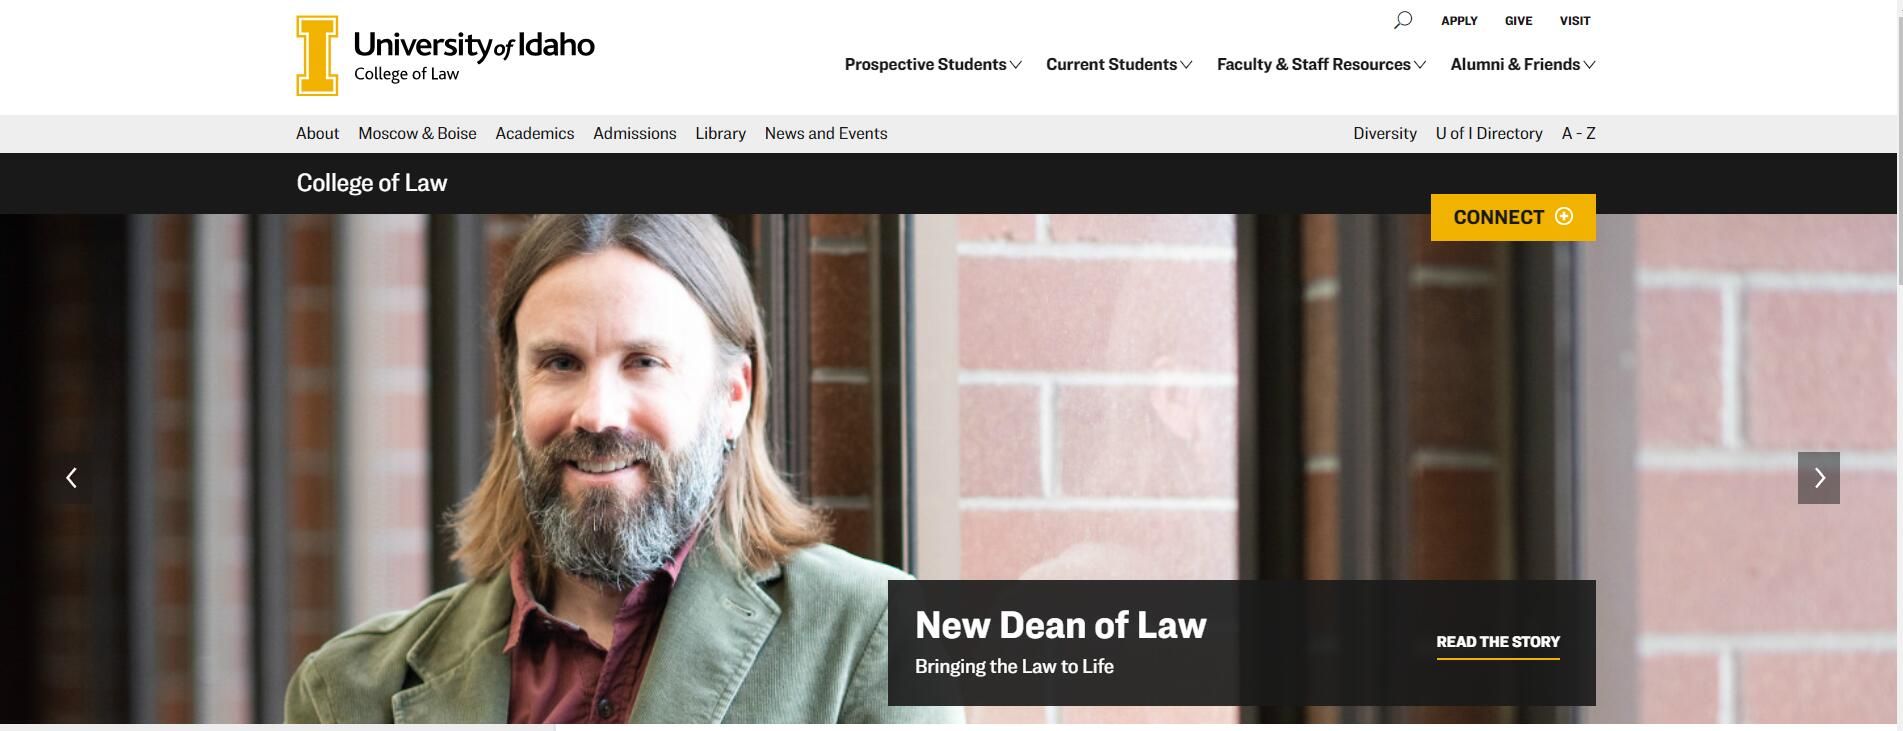 The College of Law at University of Idaho